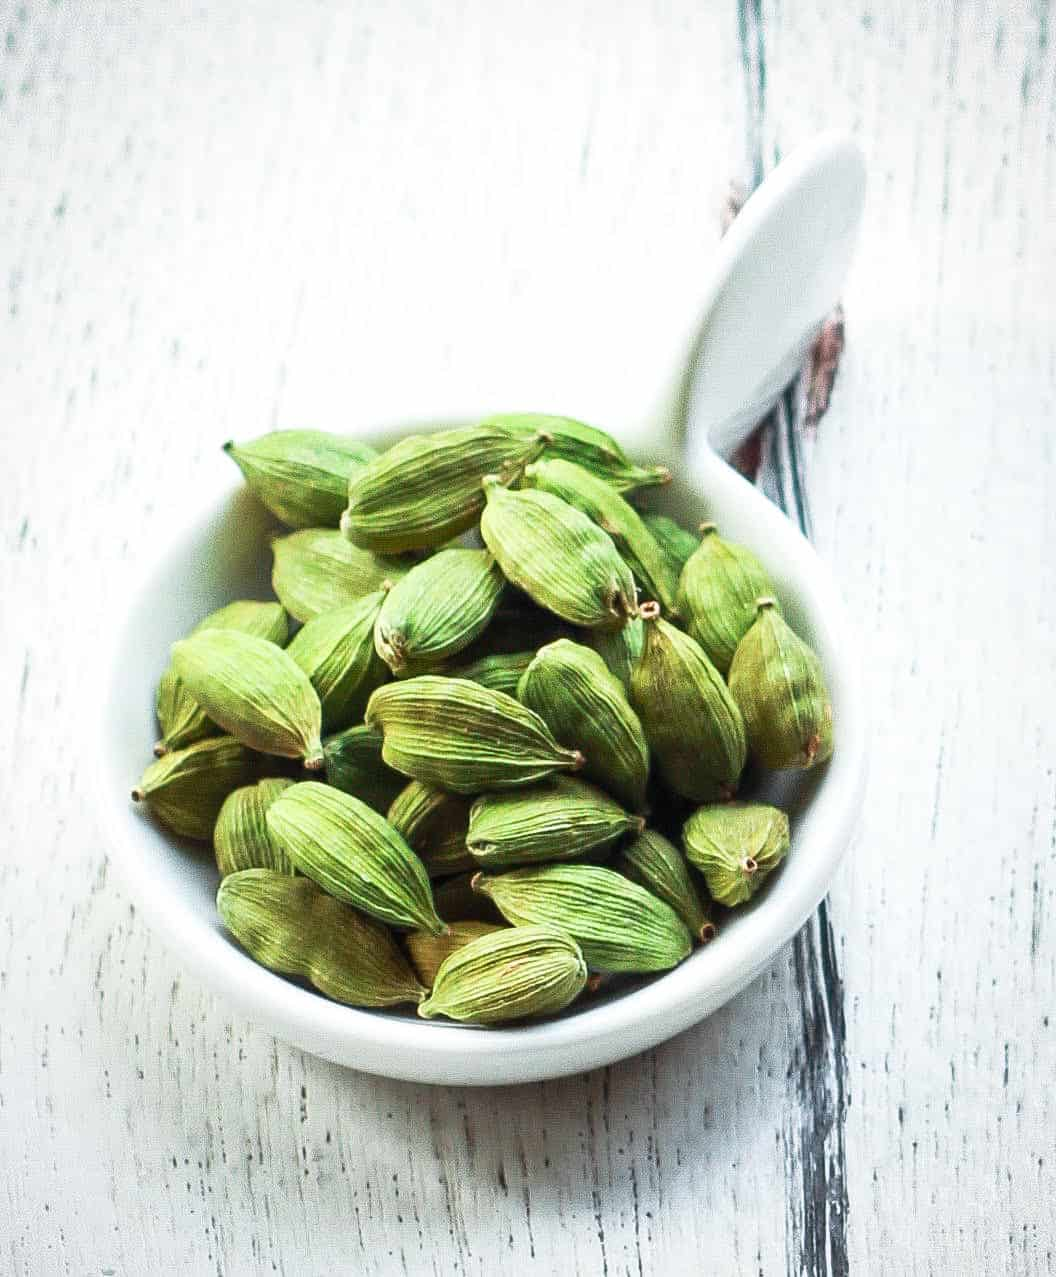 CARDAMOM: The Queen of Spices